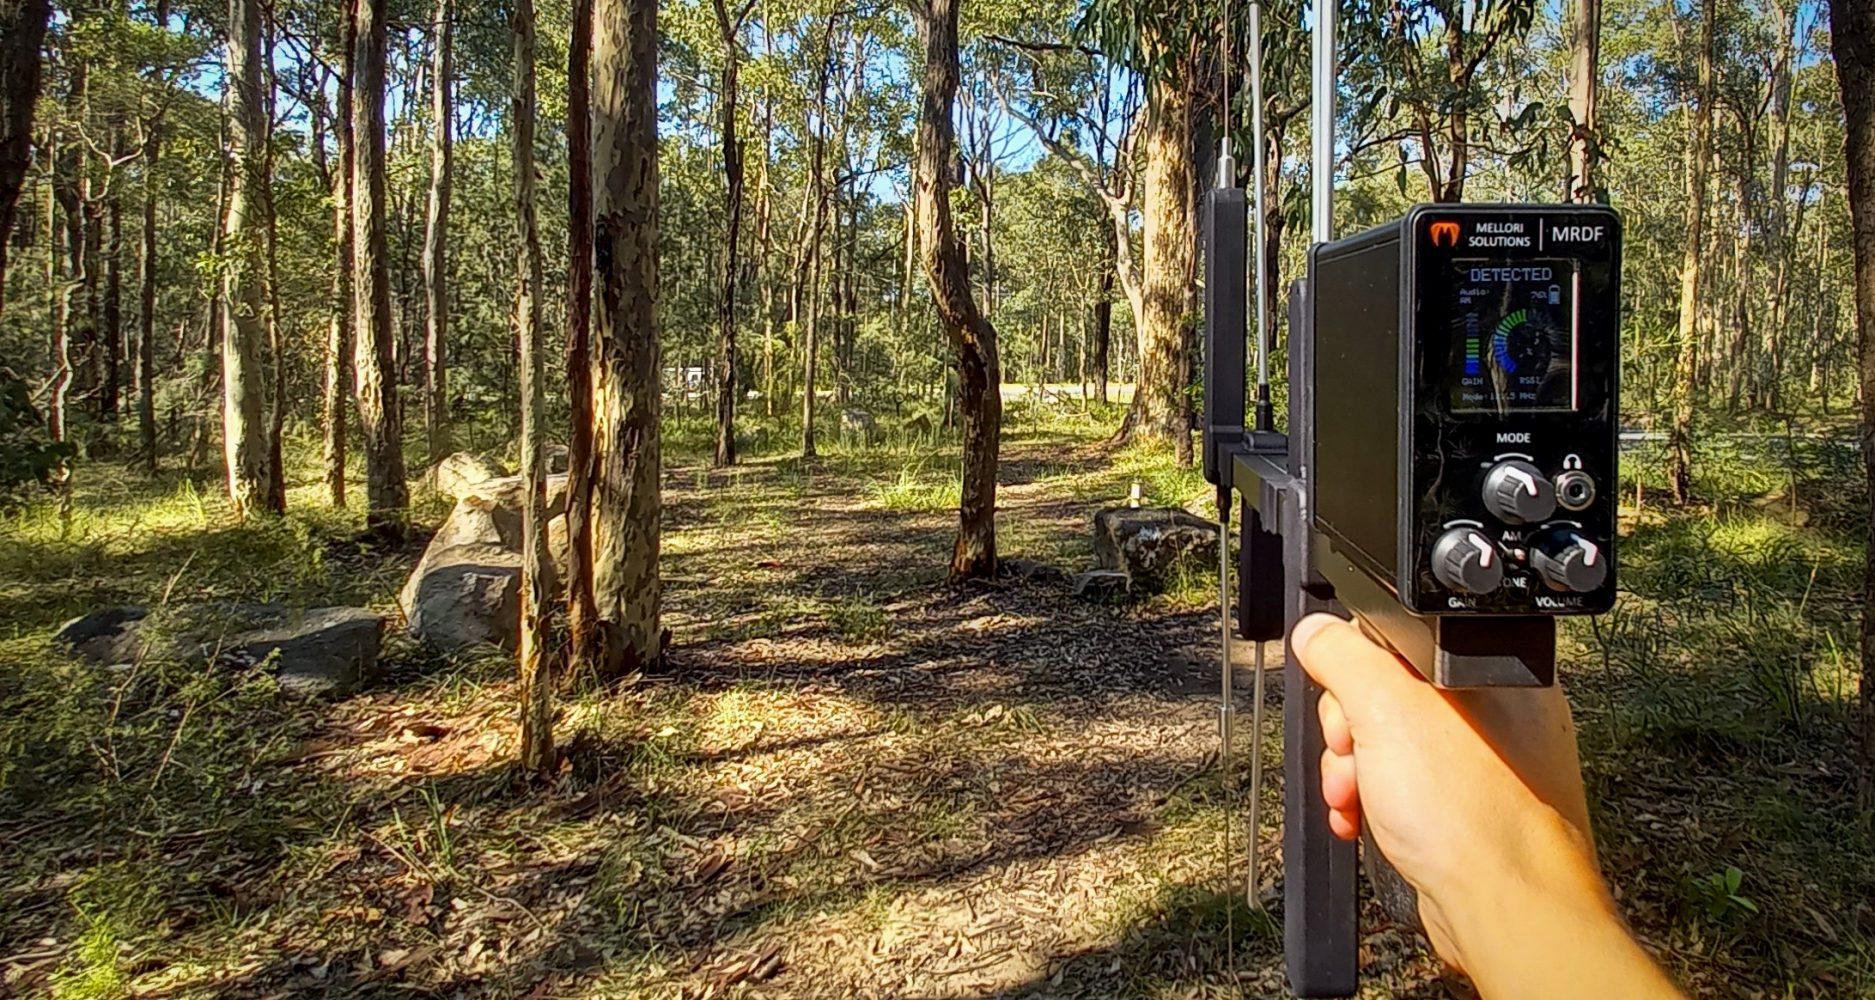 Mellori is exceeding expectations with their Australian made Radio Direction Finder